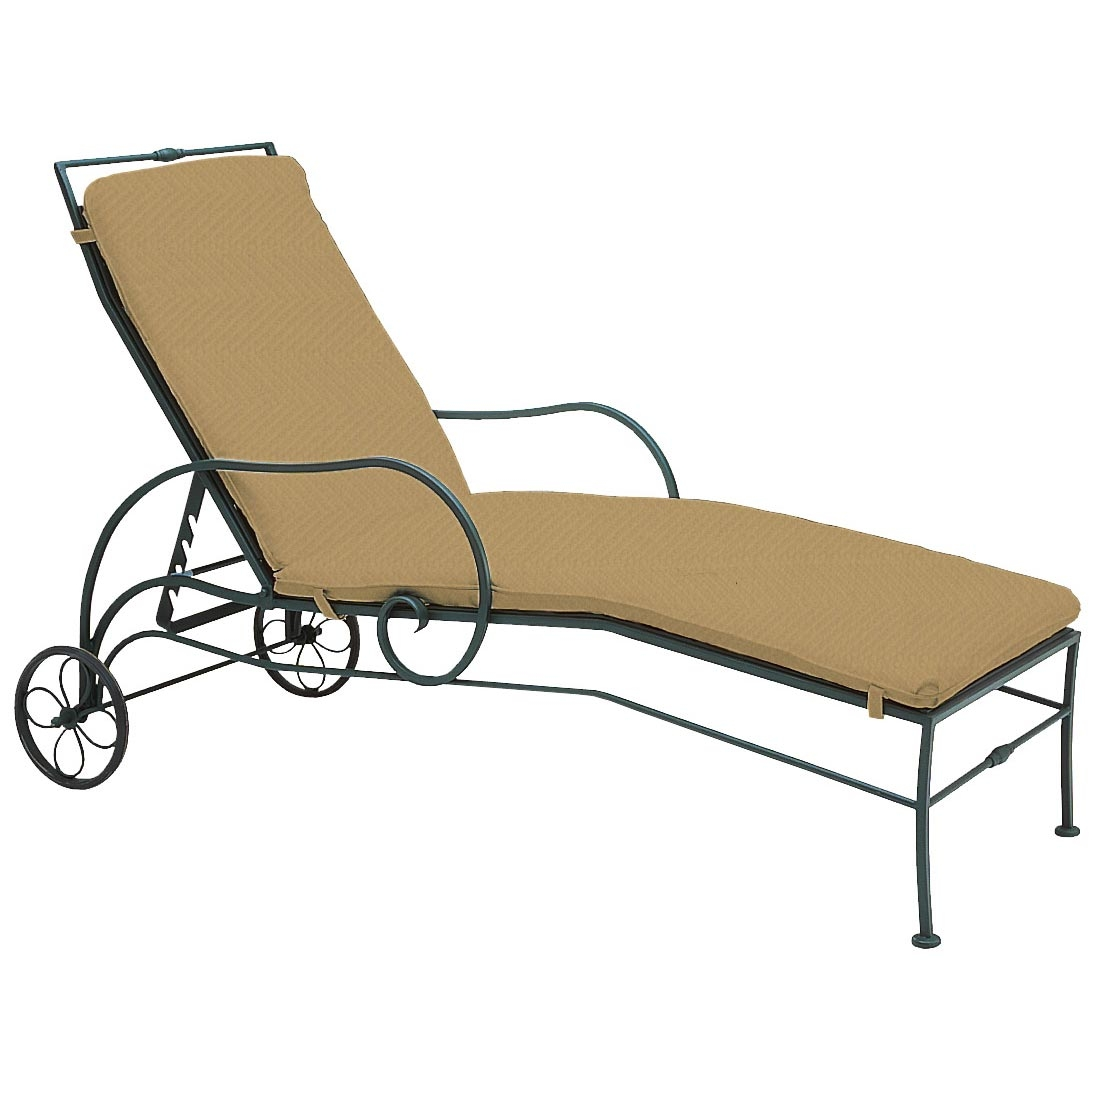 Buy the sheffield chaise lounge for your yard online for Buy chaise lounge online